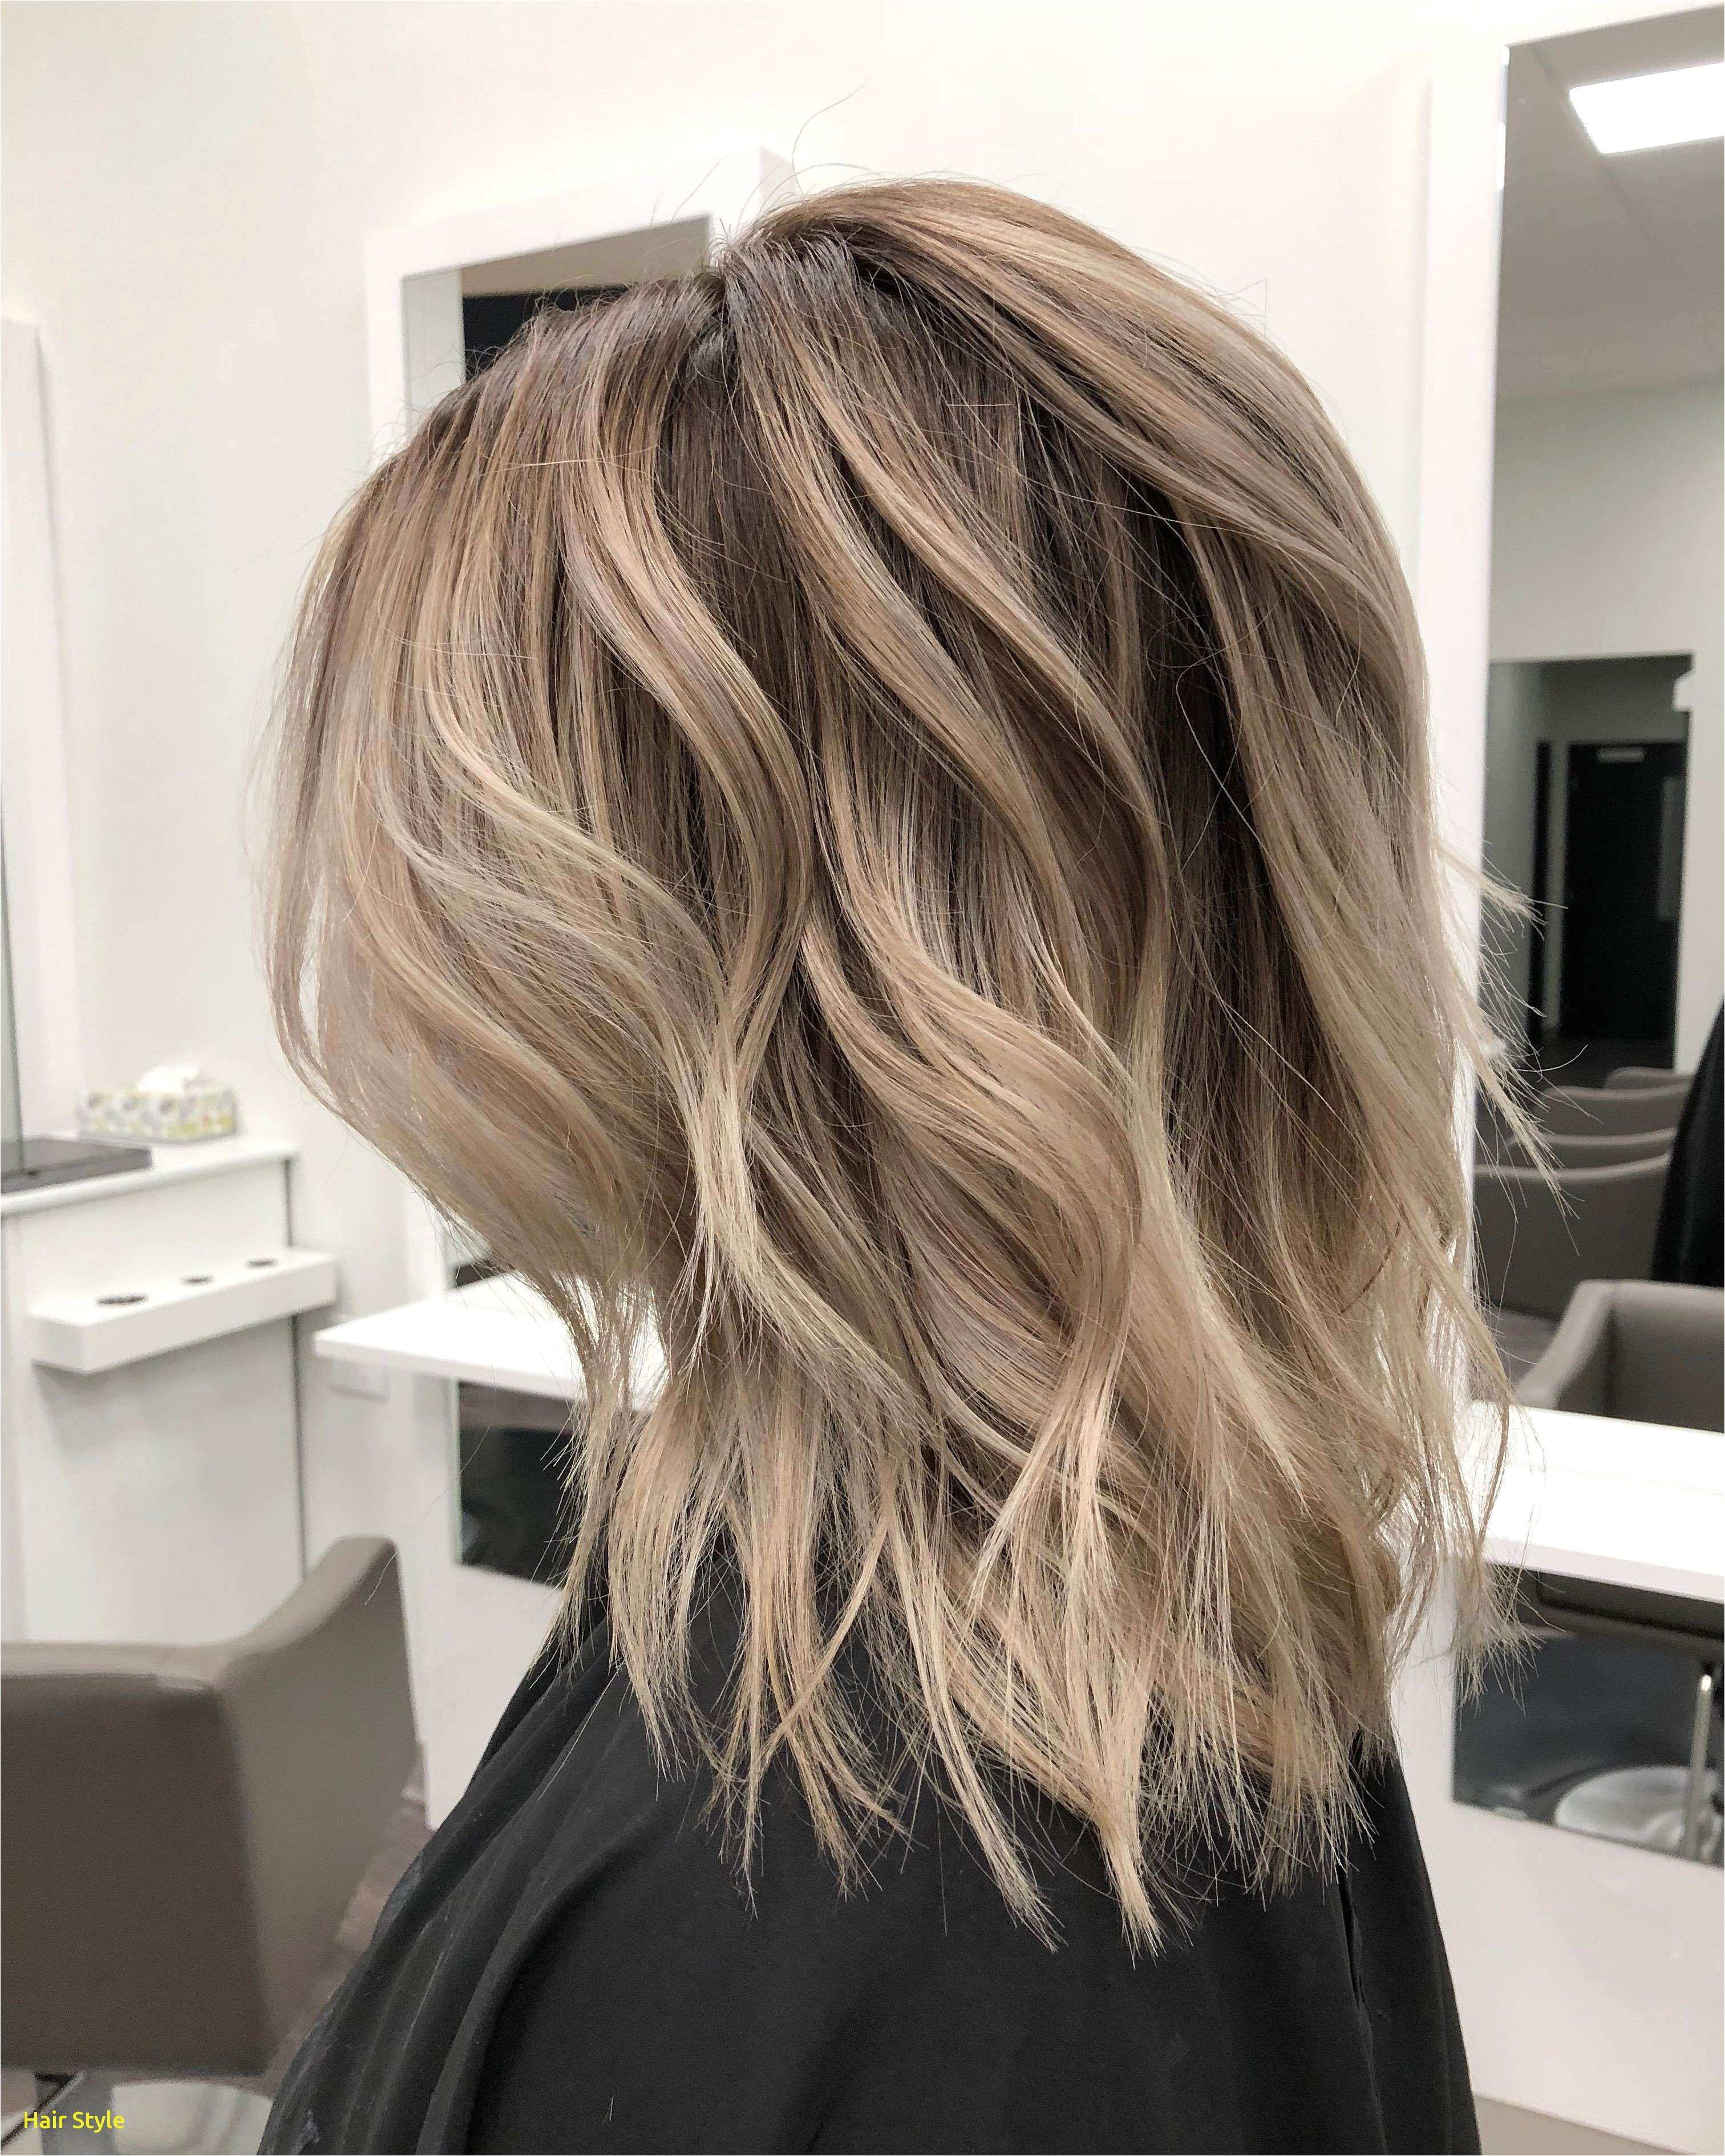 New Hairstyles for Girls with Medium Hair Lovely Lovely Layered Hairstyles for Women with Long Hair